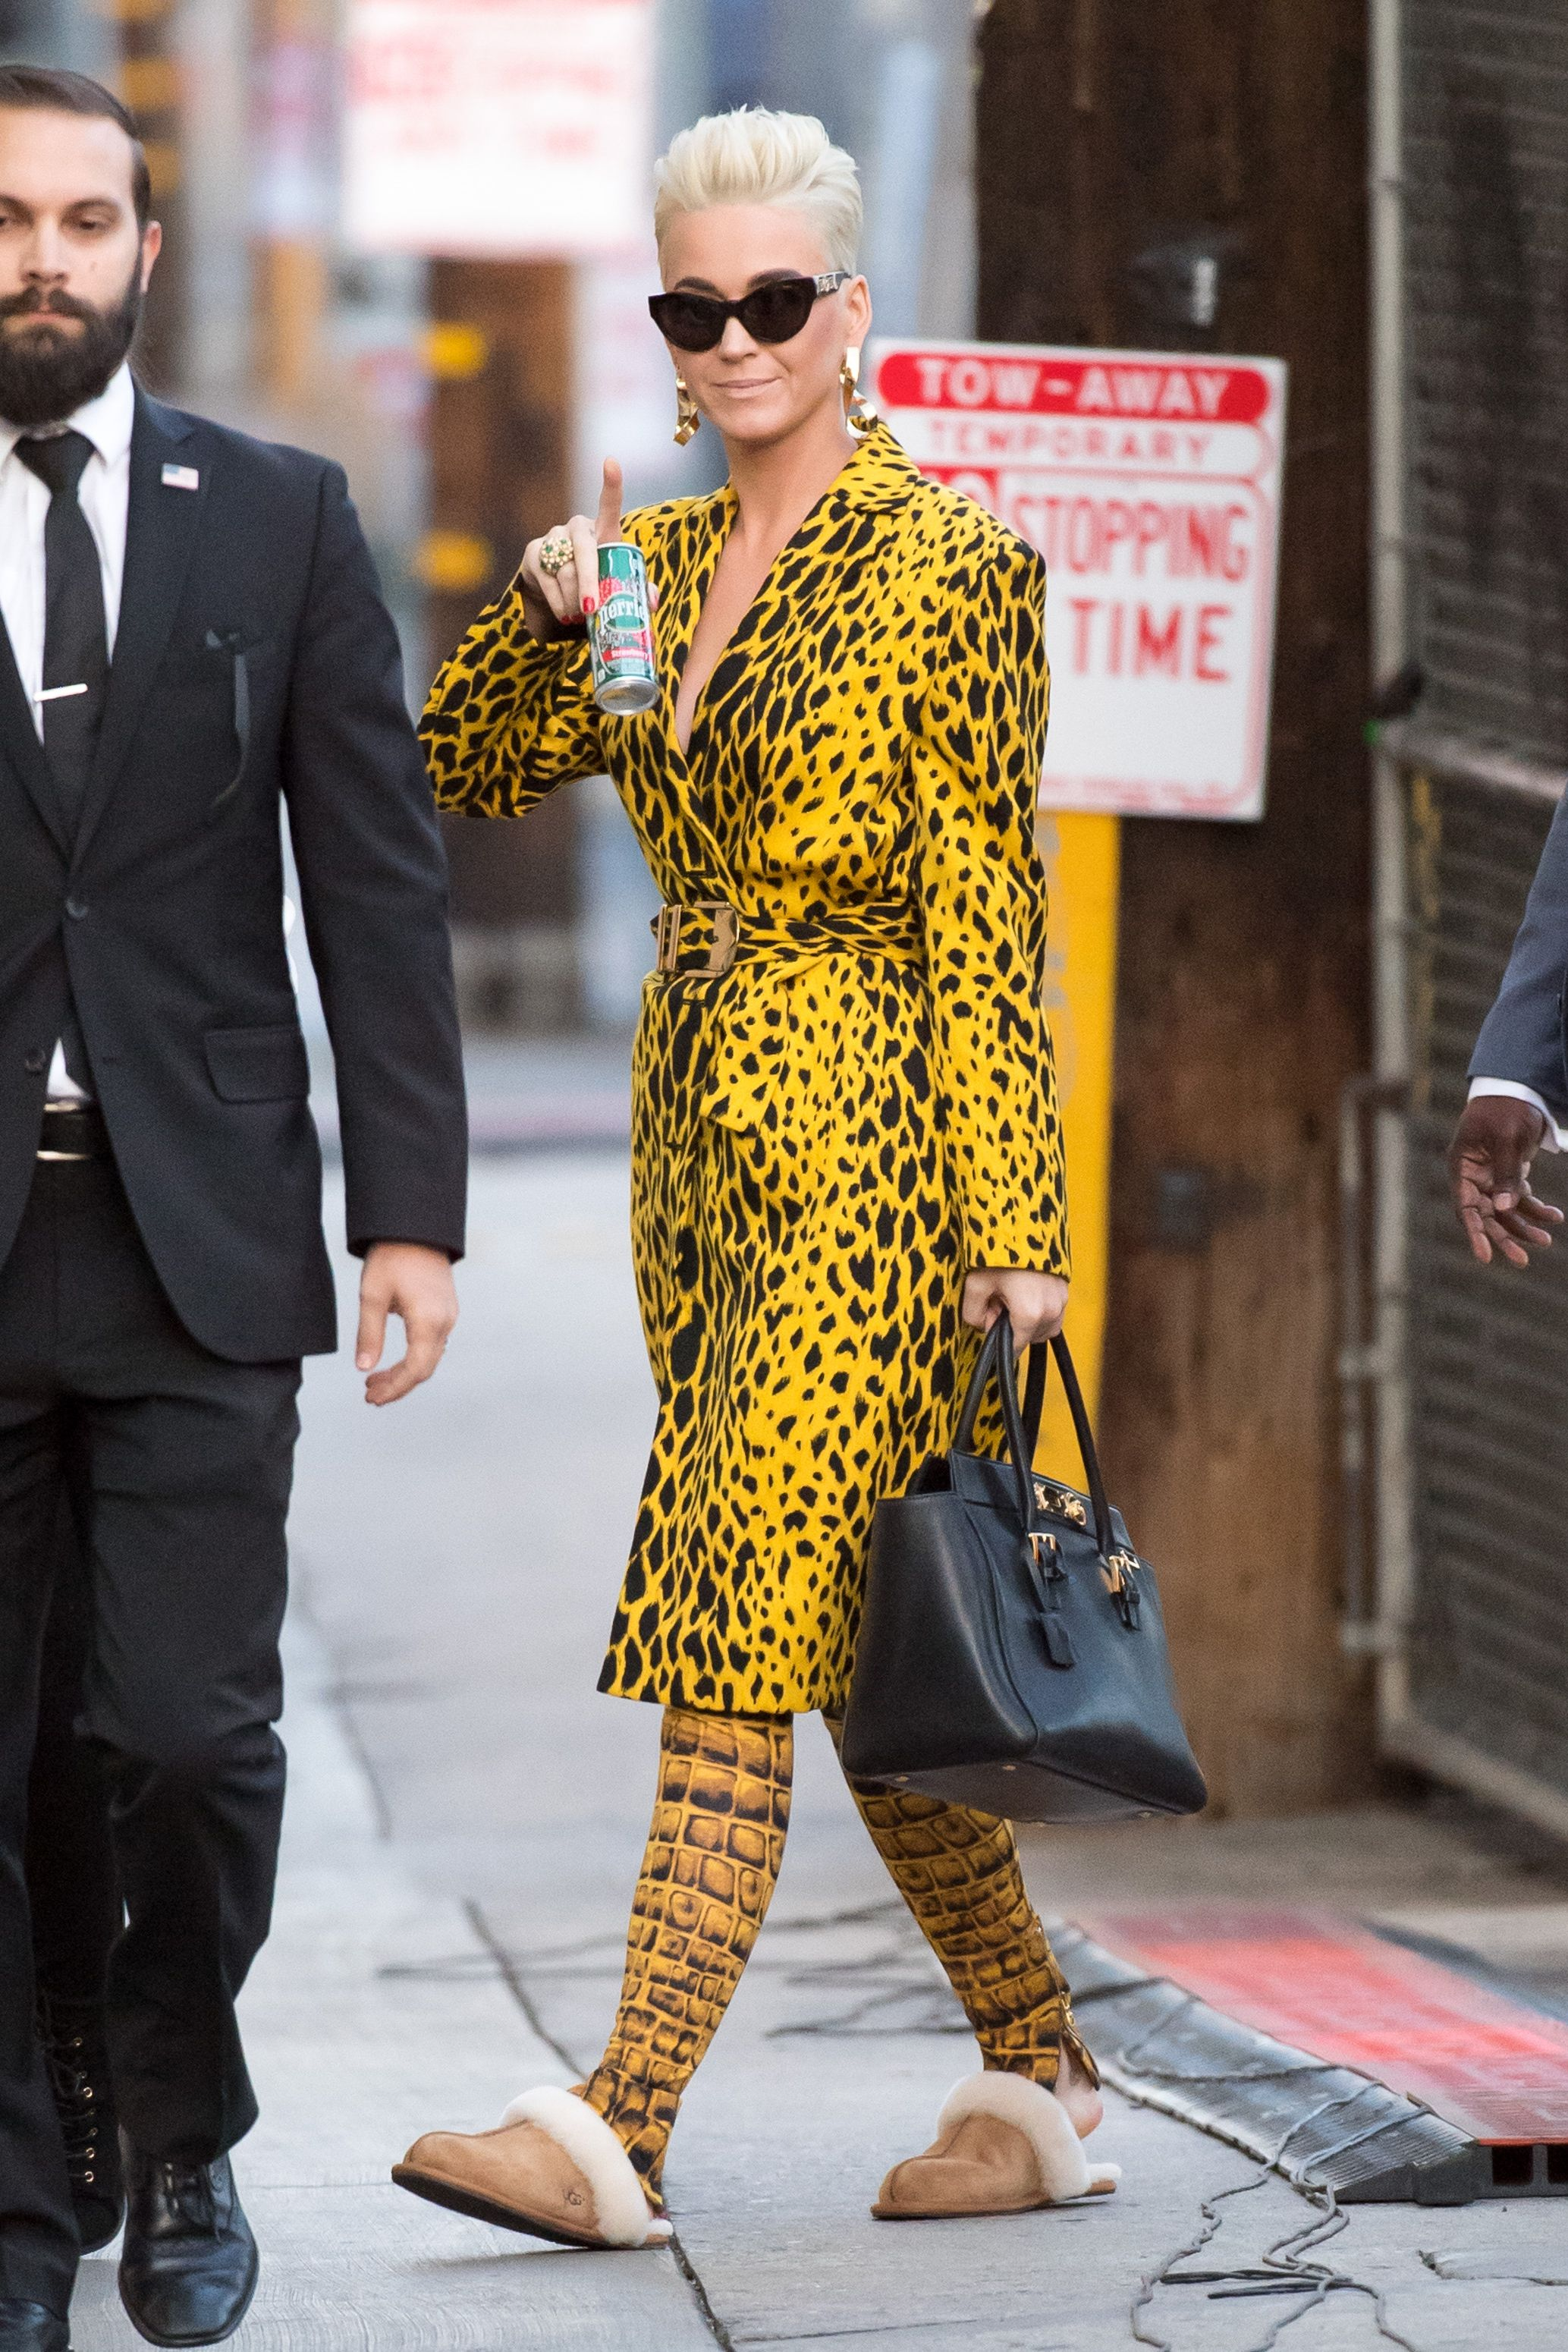 Katy Perry Taking a page out of Tiffany Haddish's book, Katy Perry left Jimmy Kimmel Live in a pair of UGG slippers the day after the Oscars. She wore the shoes with a yellow leopard trench and geometric print trousers.